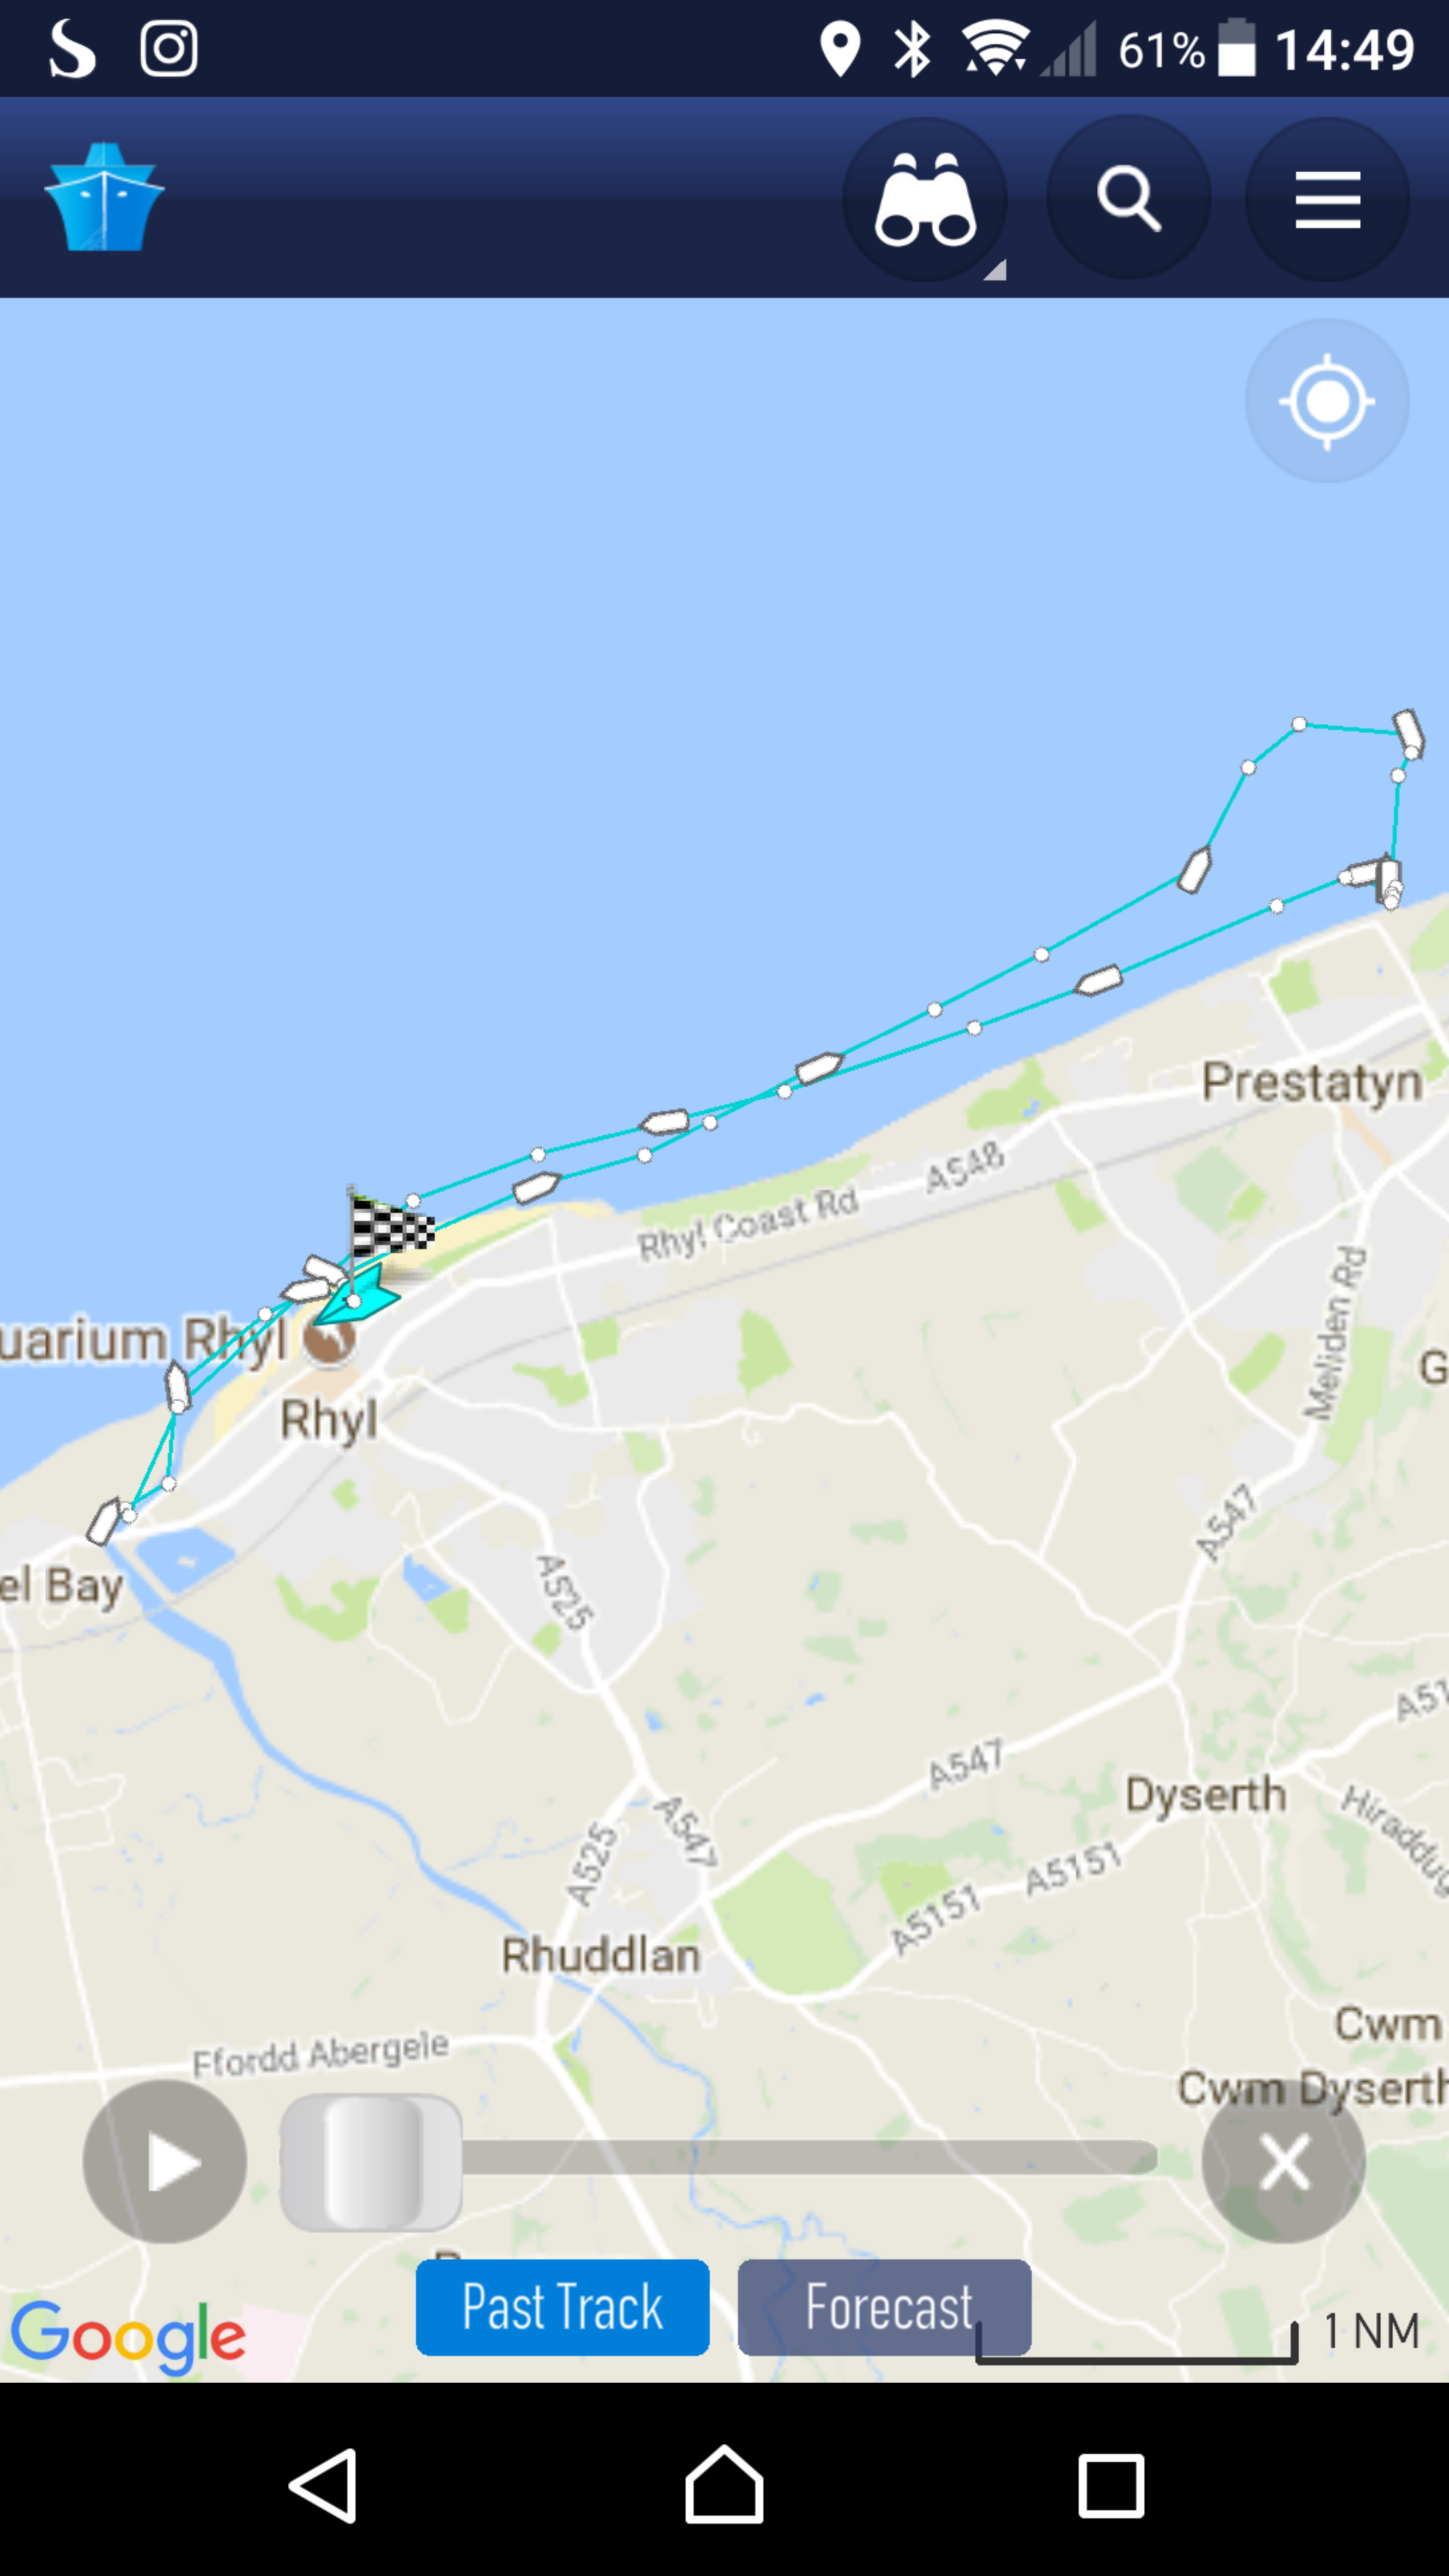 Track of Rhyl inshore lifeboat on hoax call